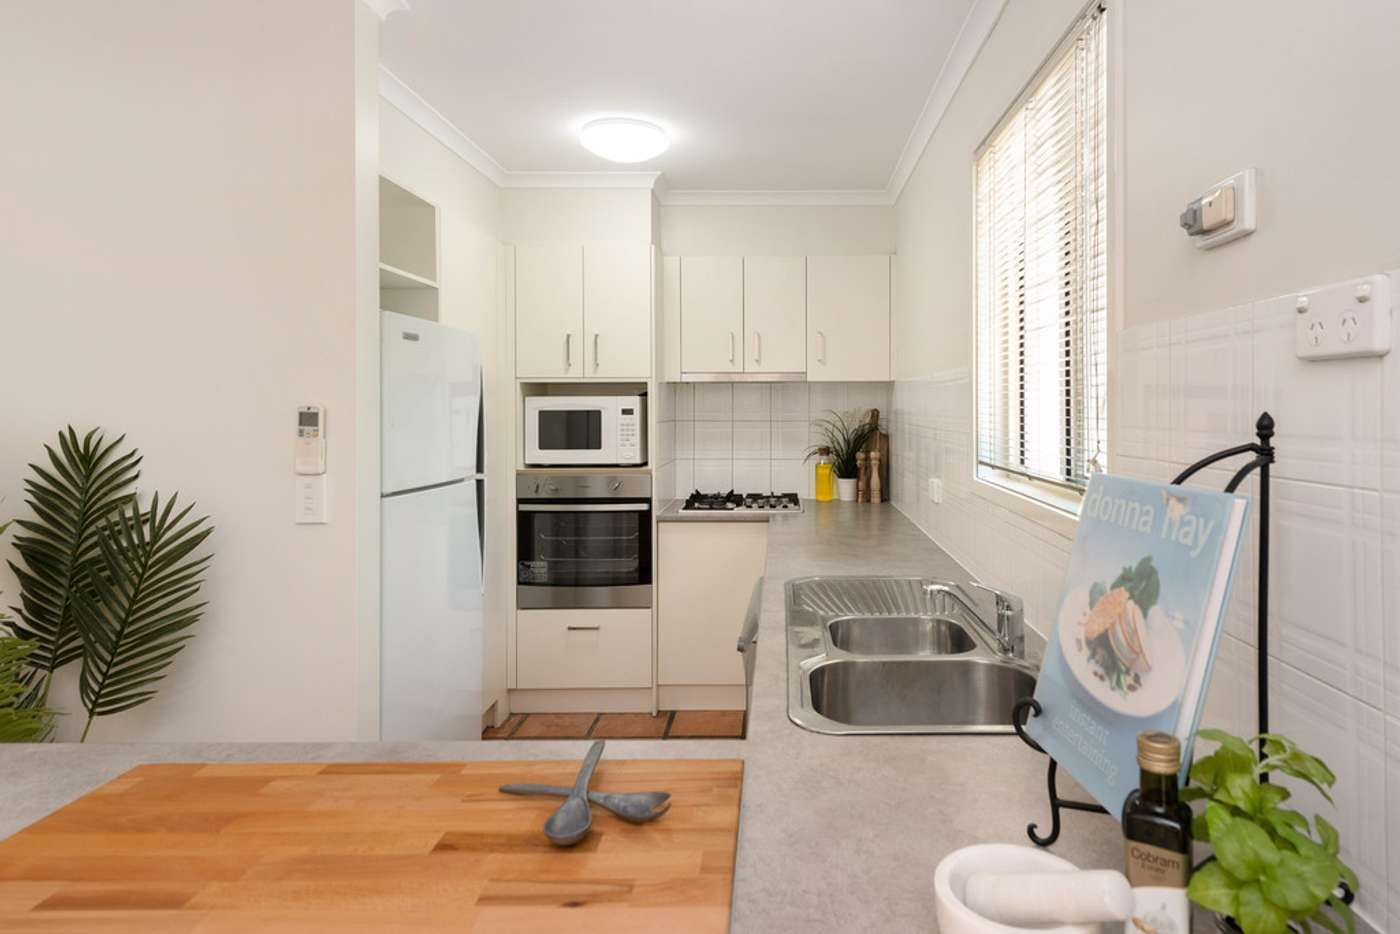 Fifth view of Homely townhouse listing, 3/74A Sir Fred Schonell Drive, St Lucia QLD 4067